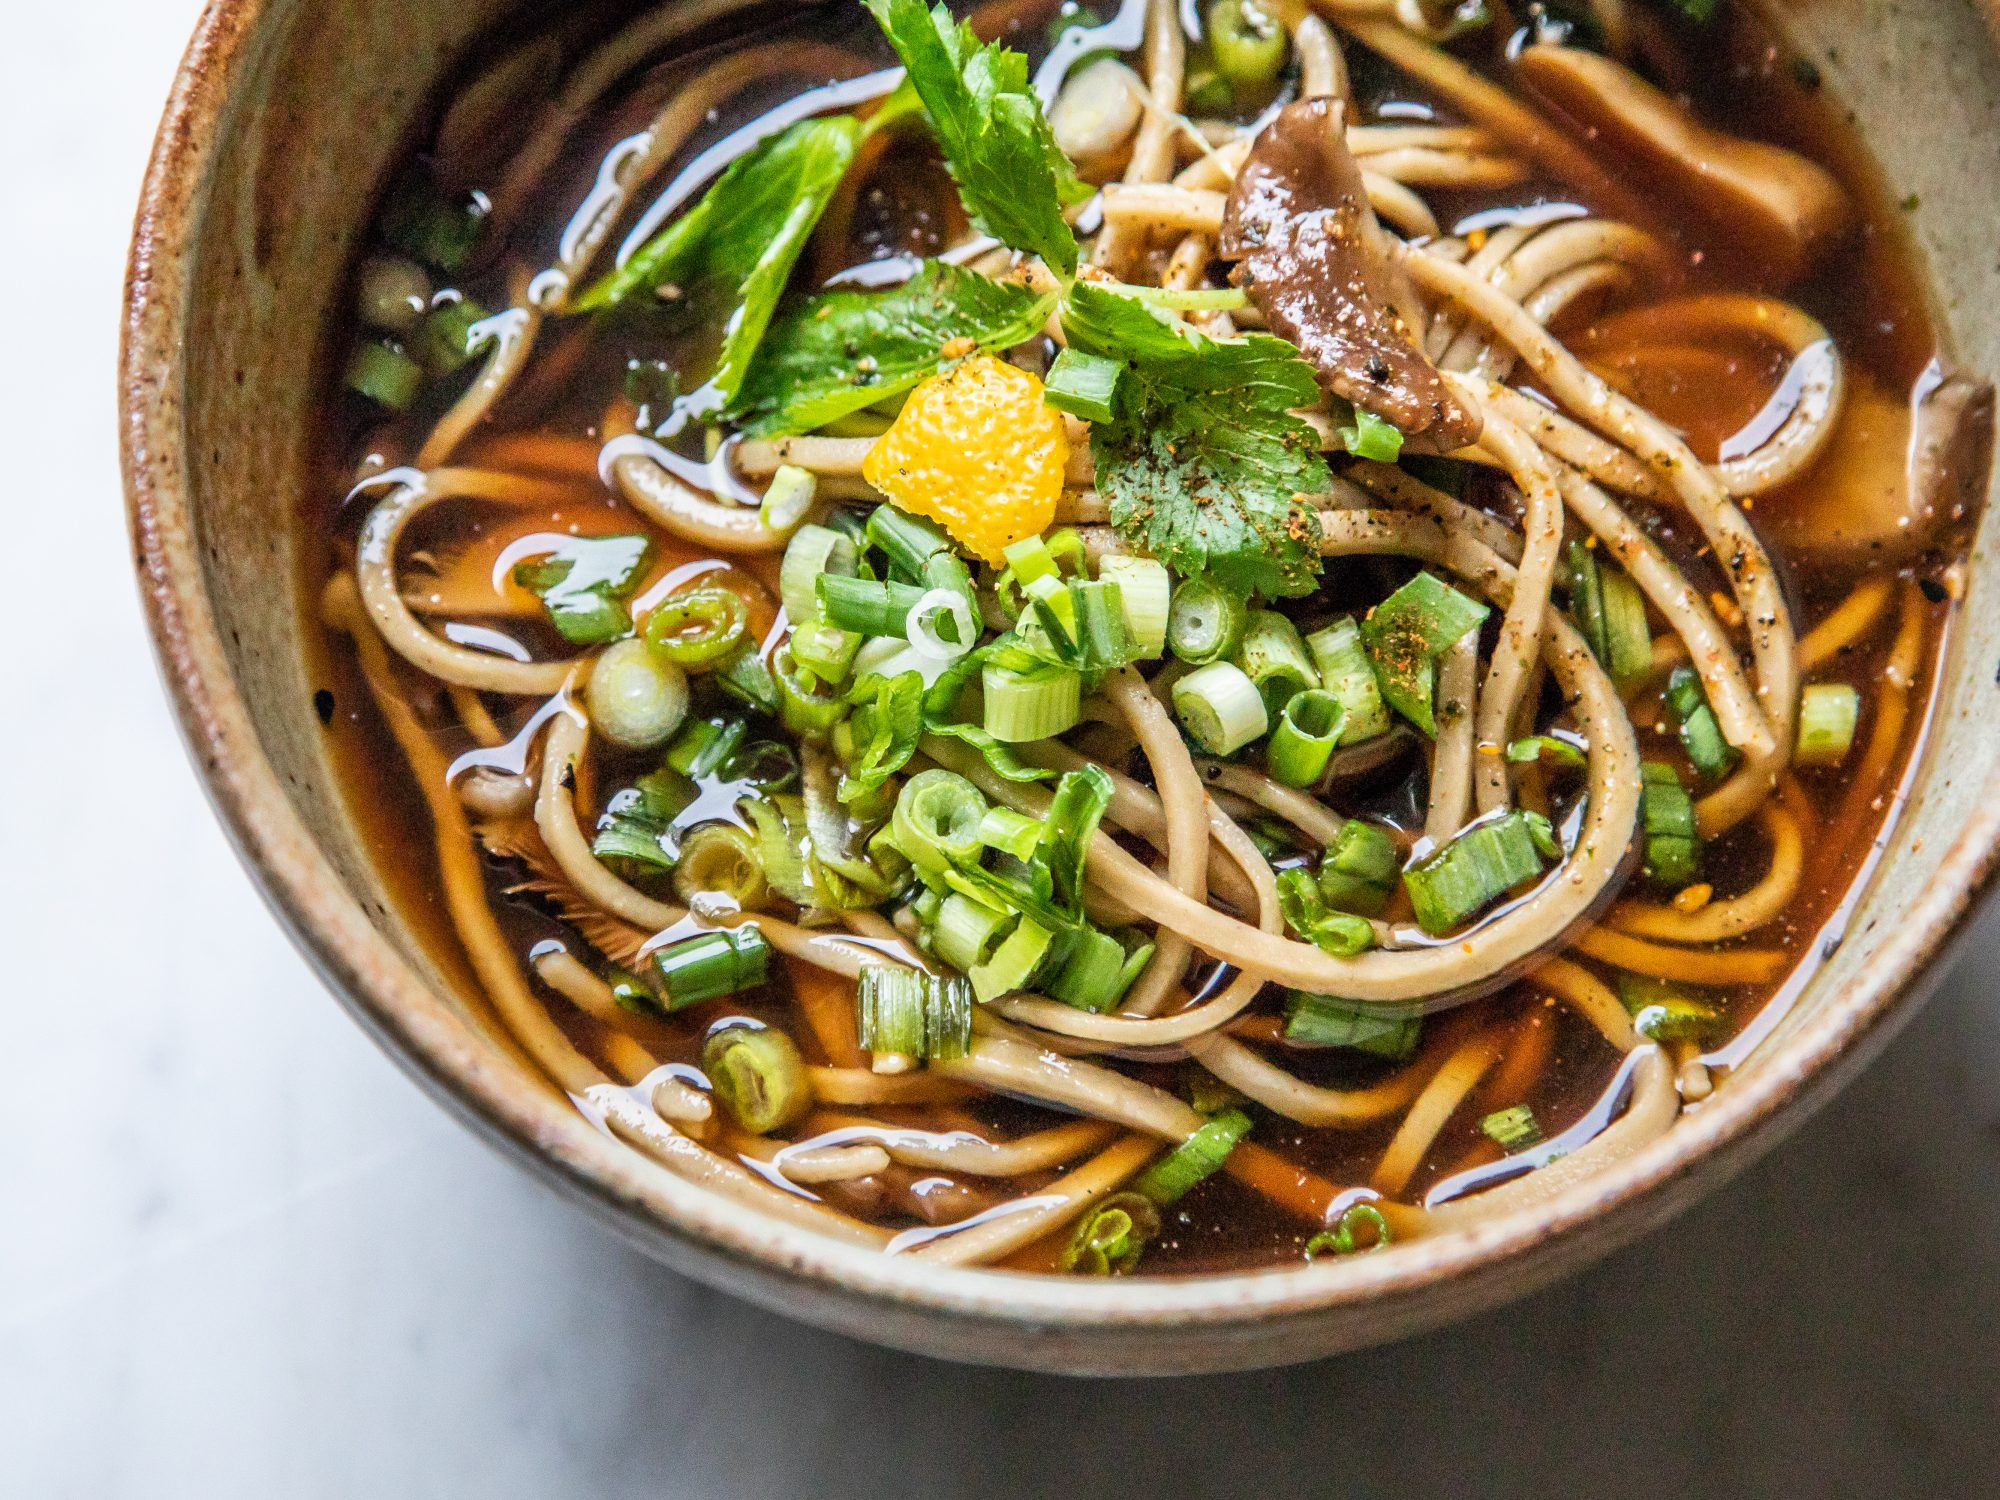 The Best Way to Make Soba Noodles